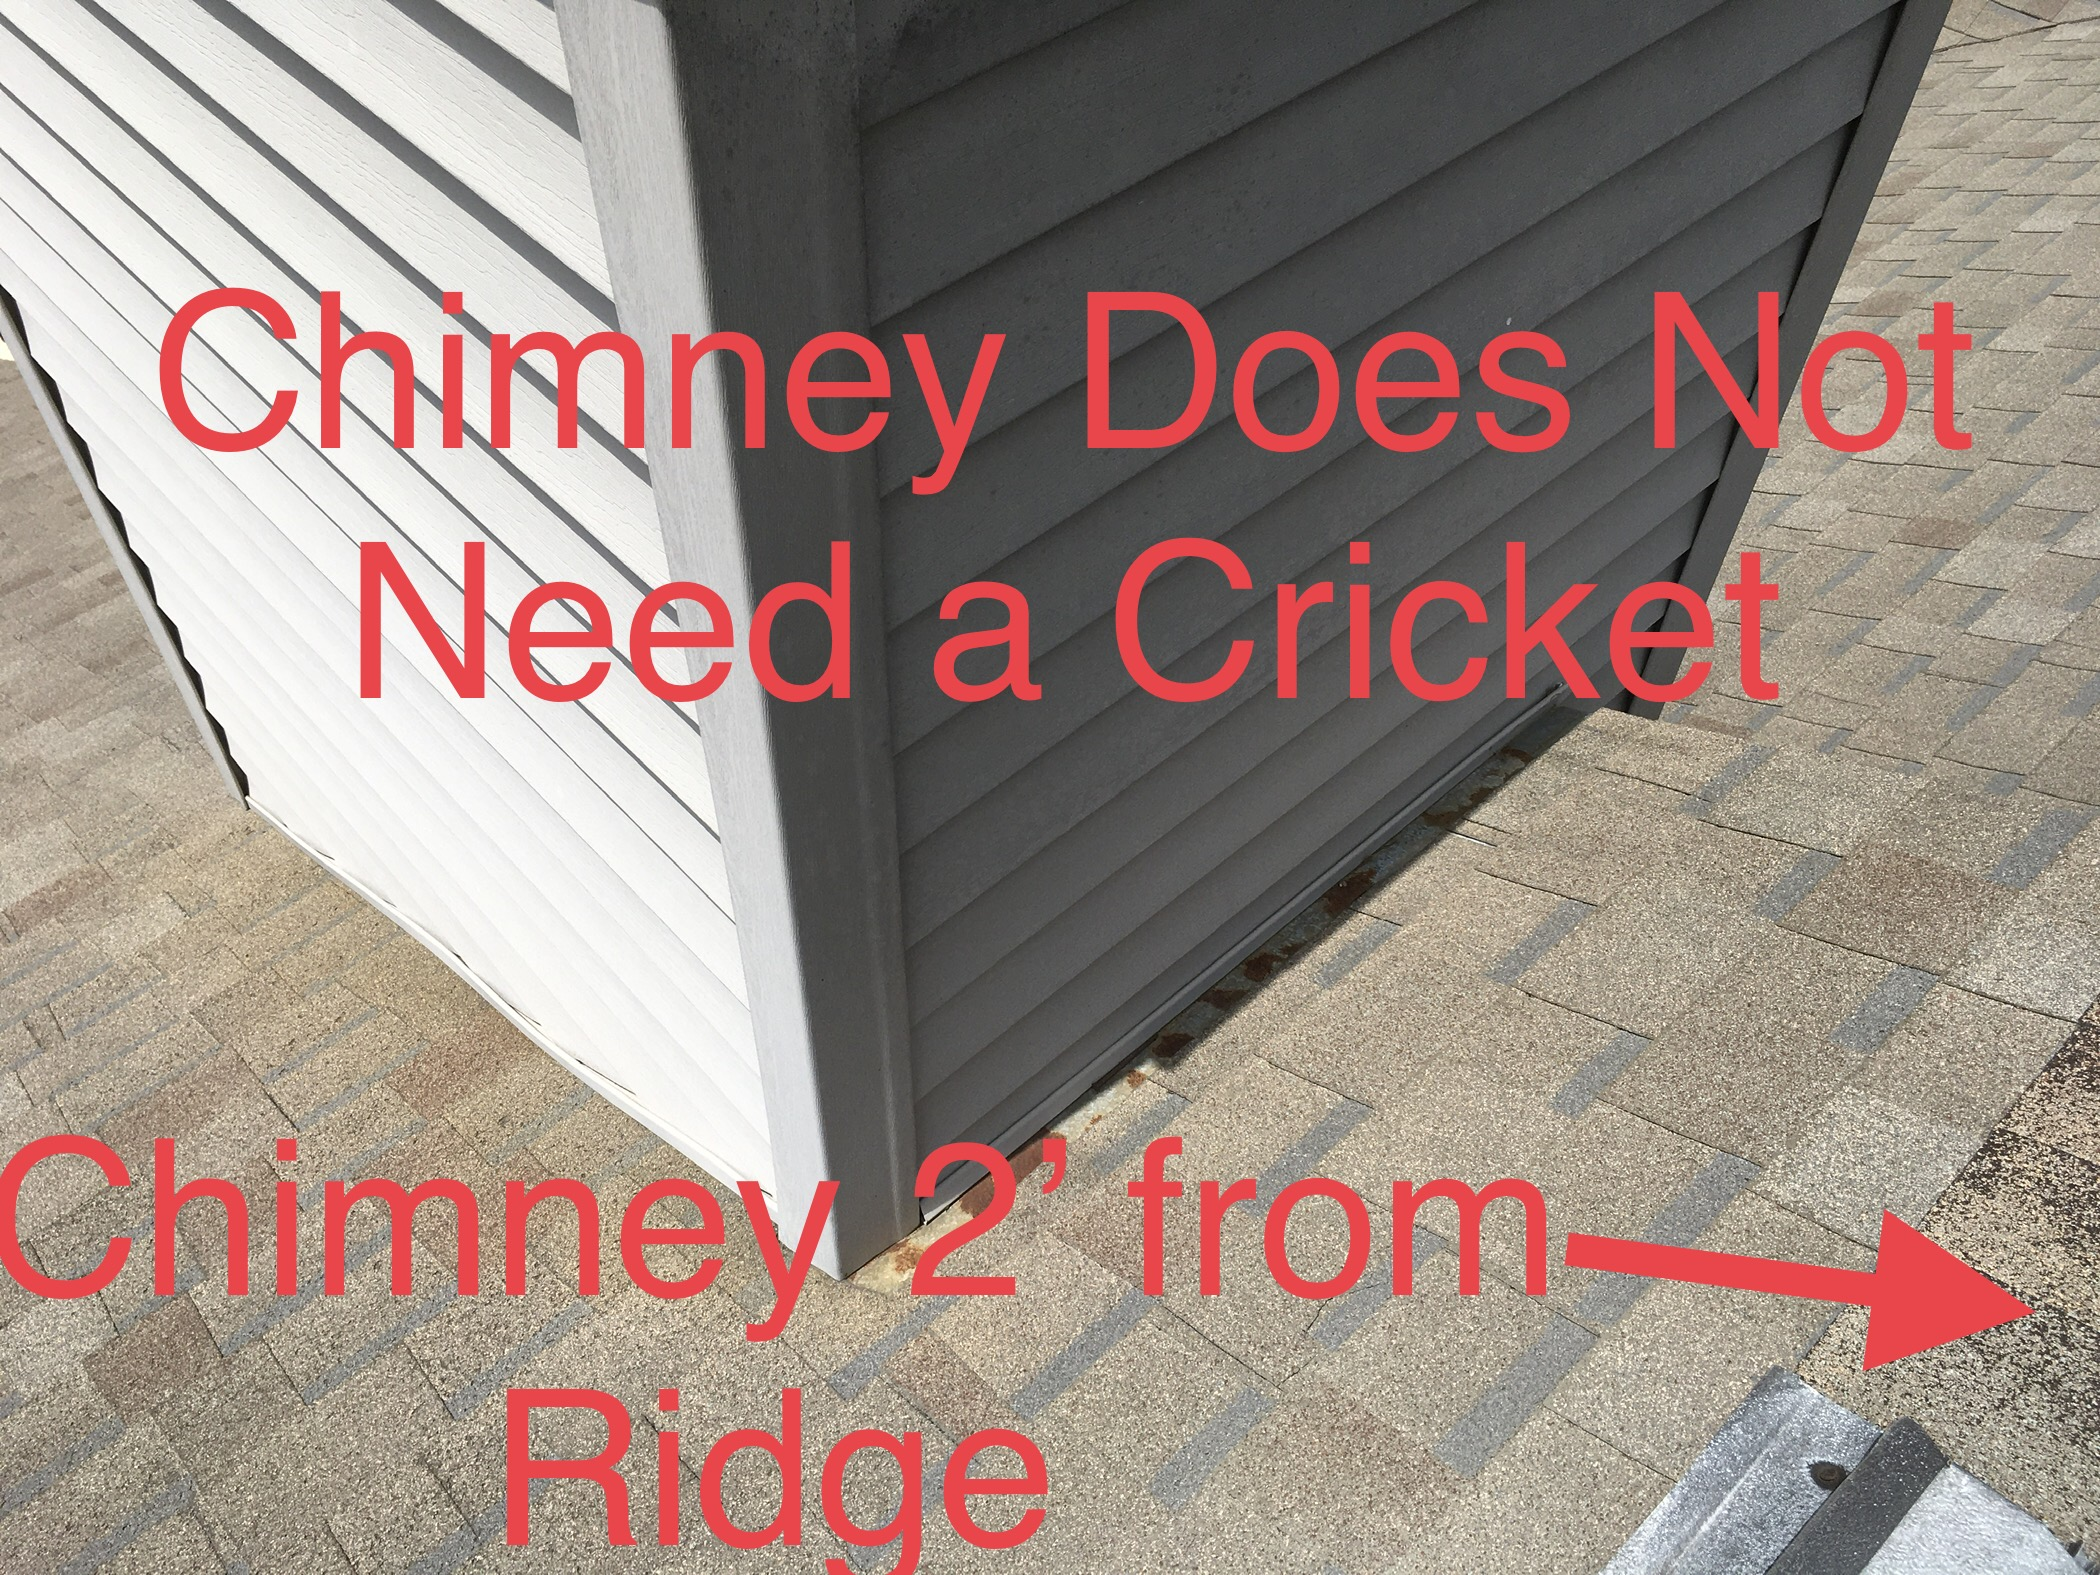 this picture is a chimney that does not need a cricket behind it